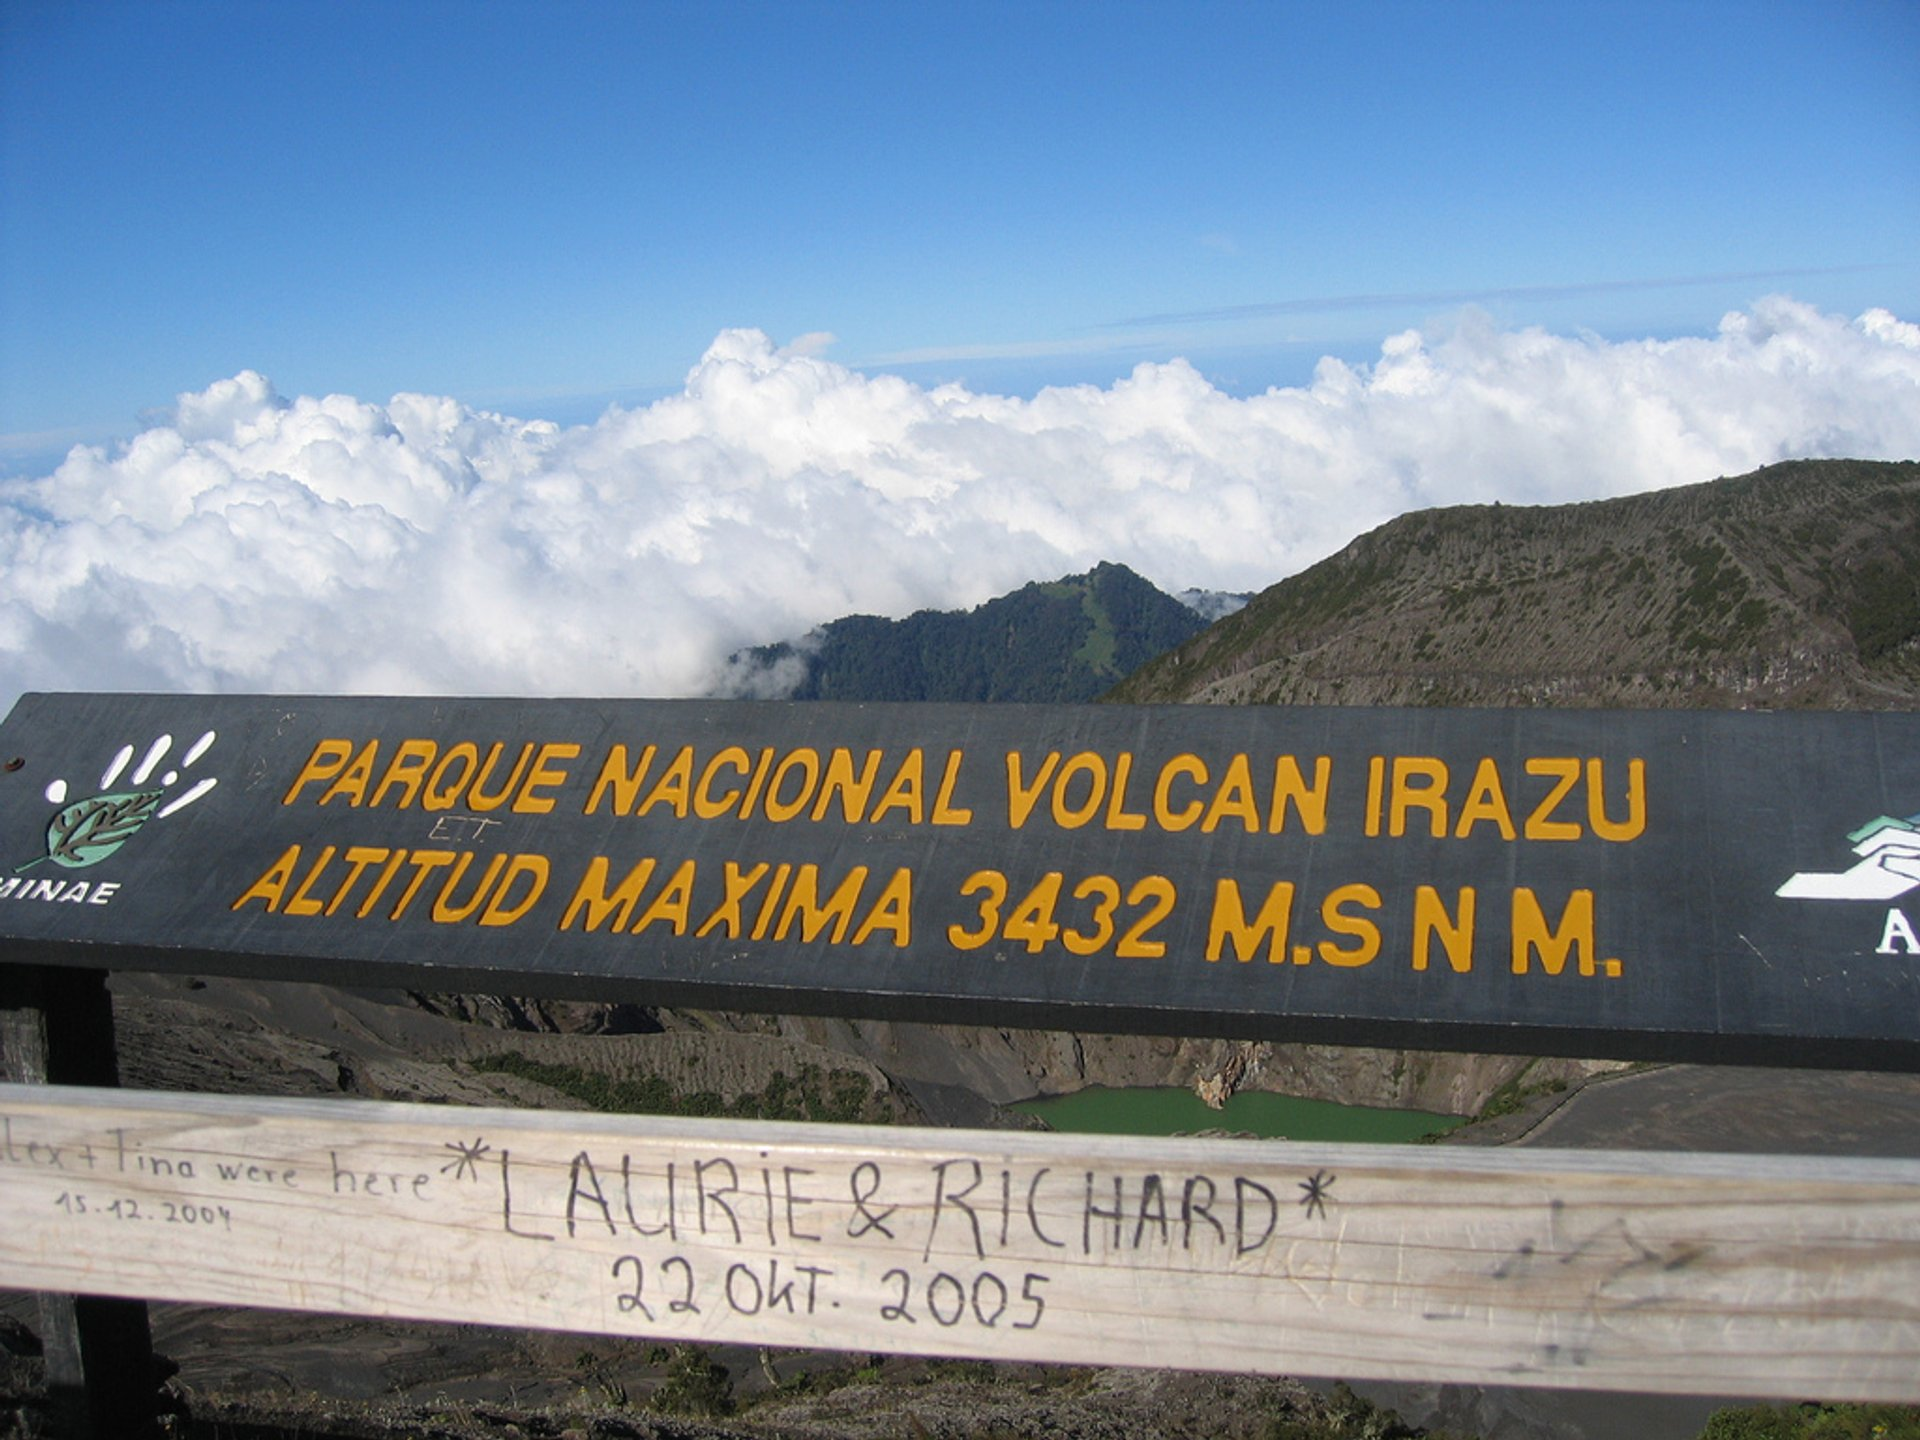 Best time to see Irazu Volcano in Costa Rica 2019